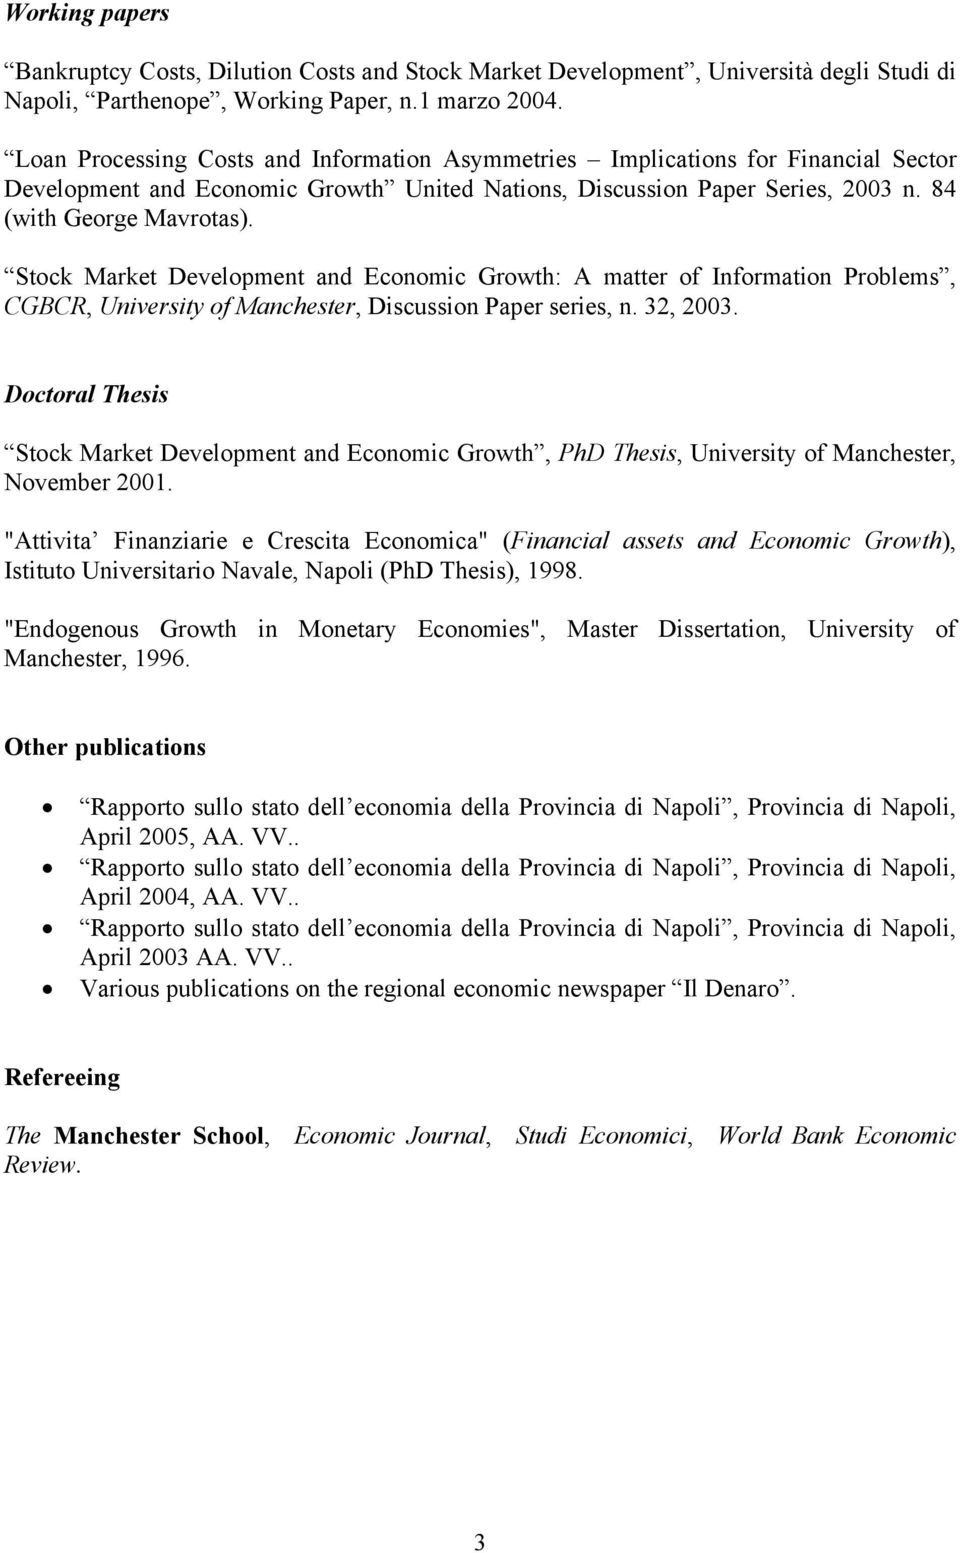 Stock Market Development and Economic Growth: A matter of Information Problems, CGBCR, University of Manchester, Discussion Paper series, n. 32, 2003.